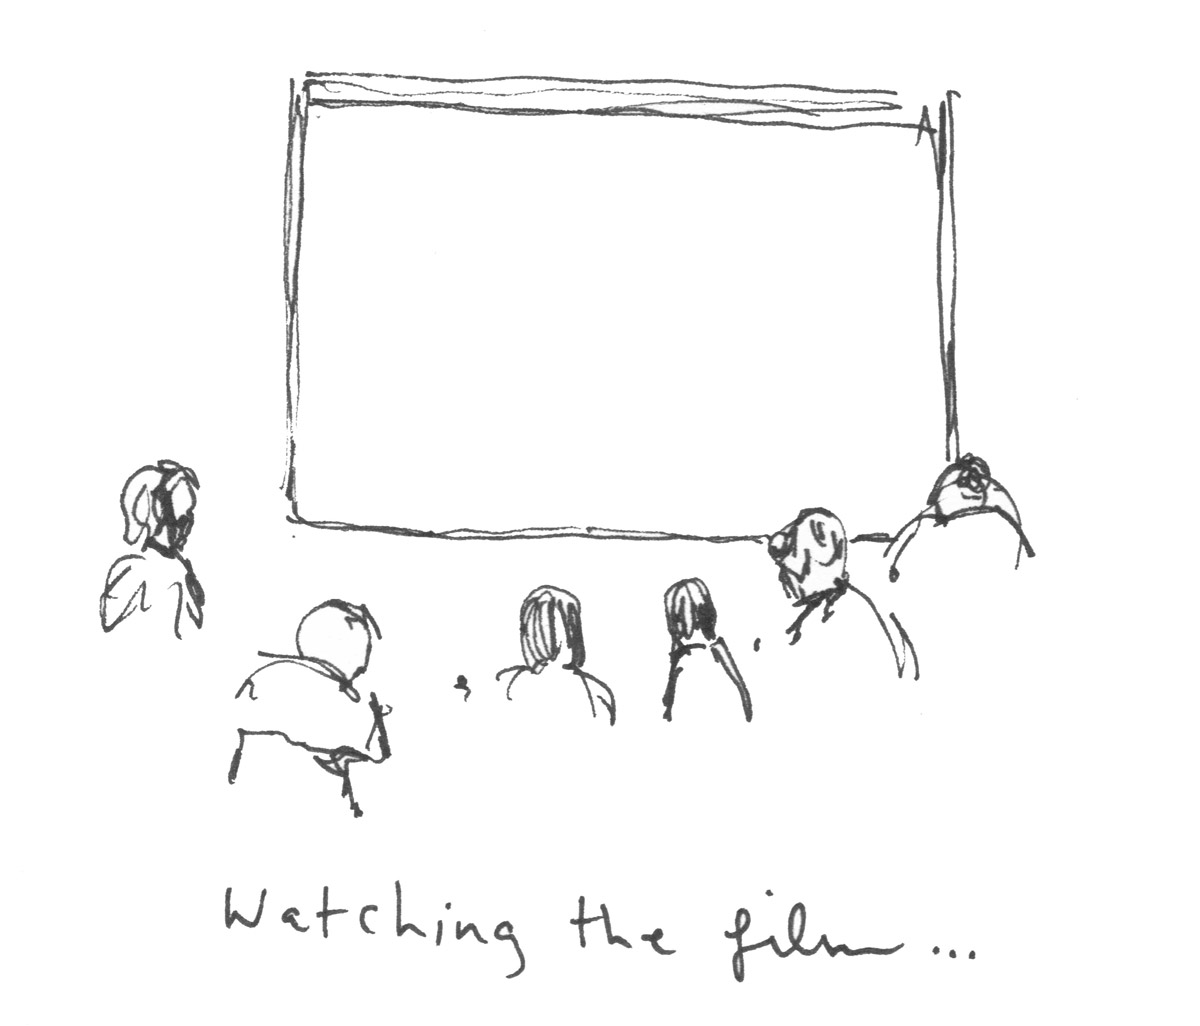 18.-Watching-the-film